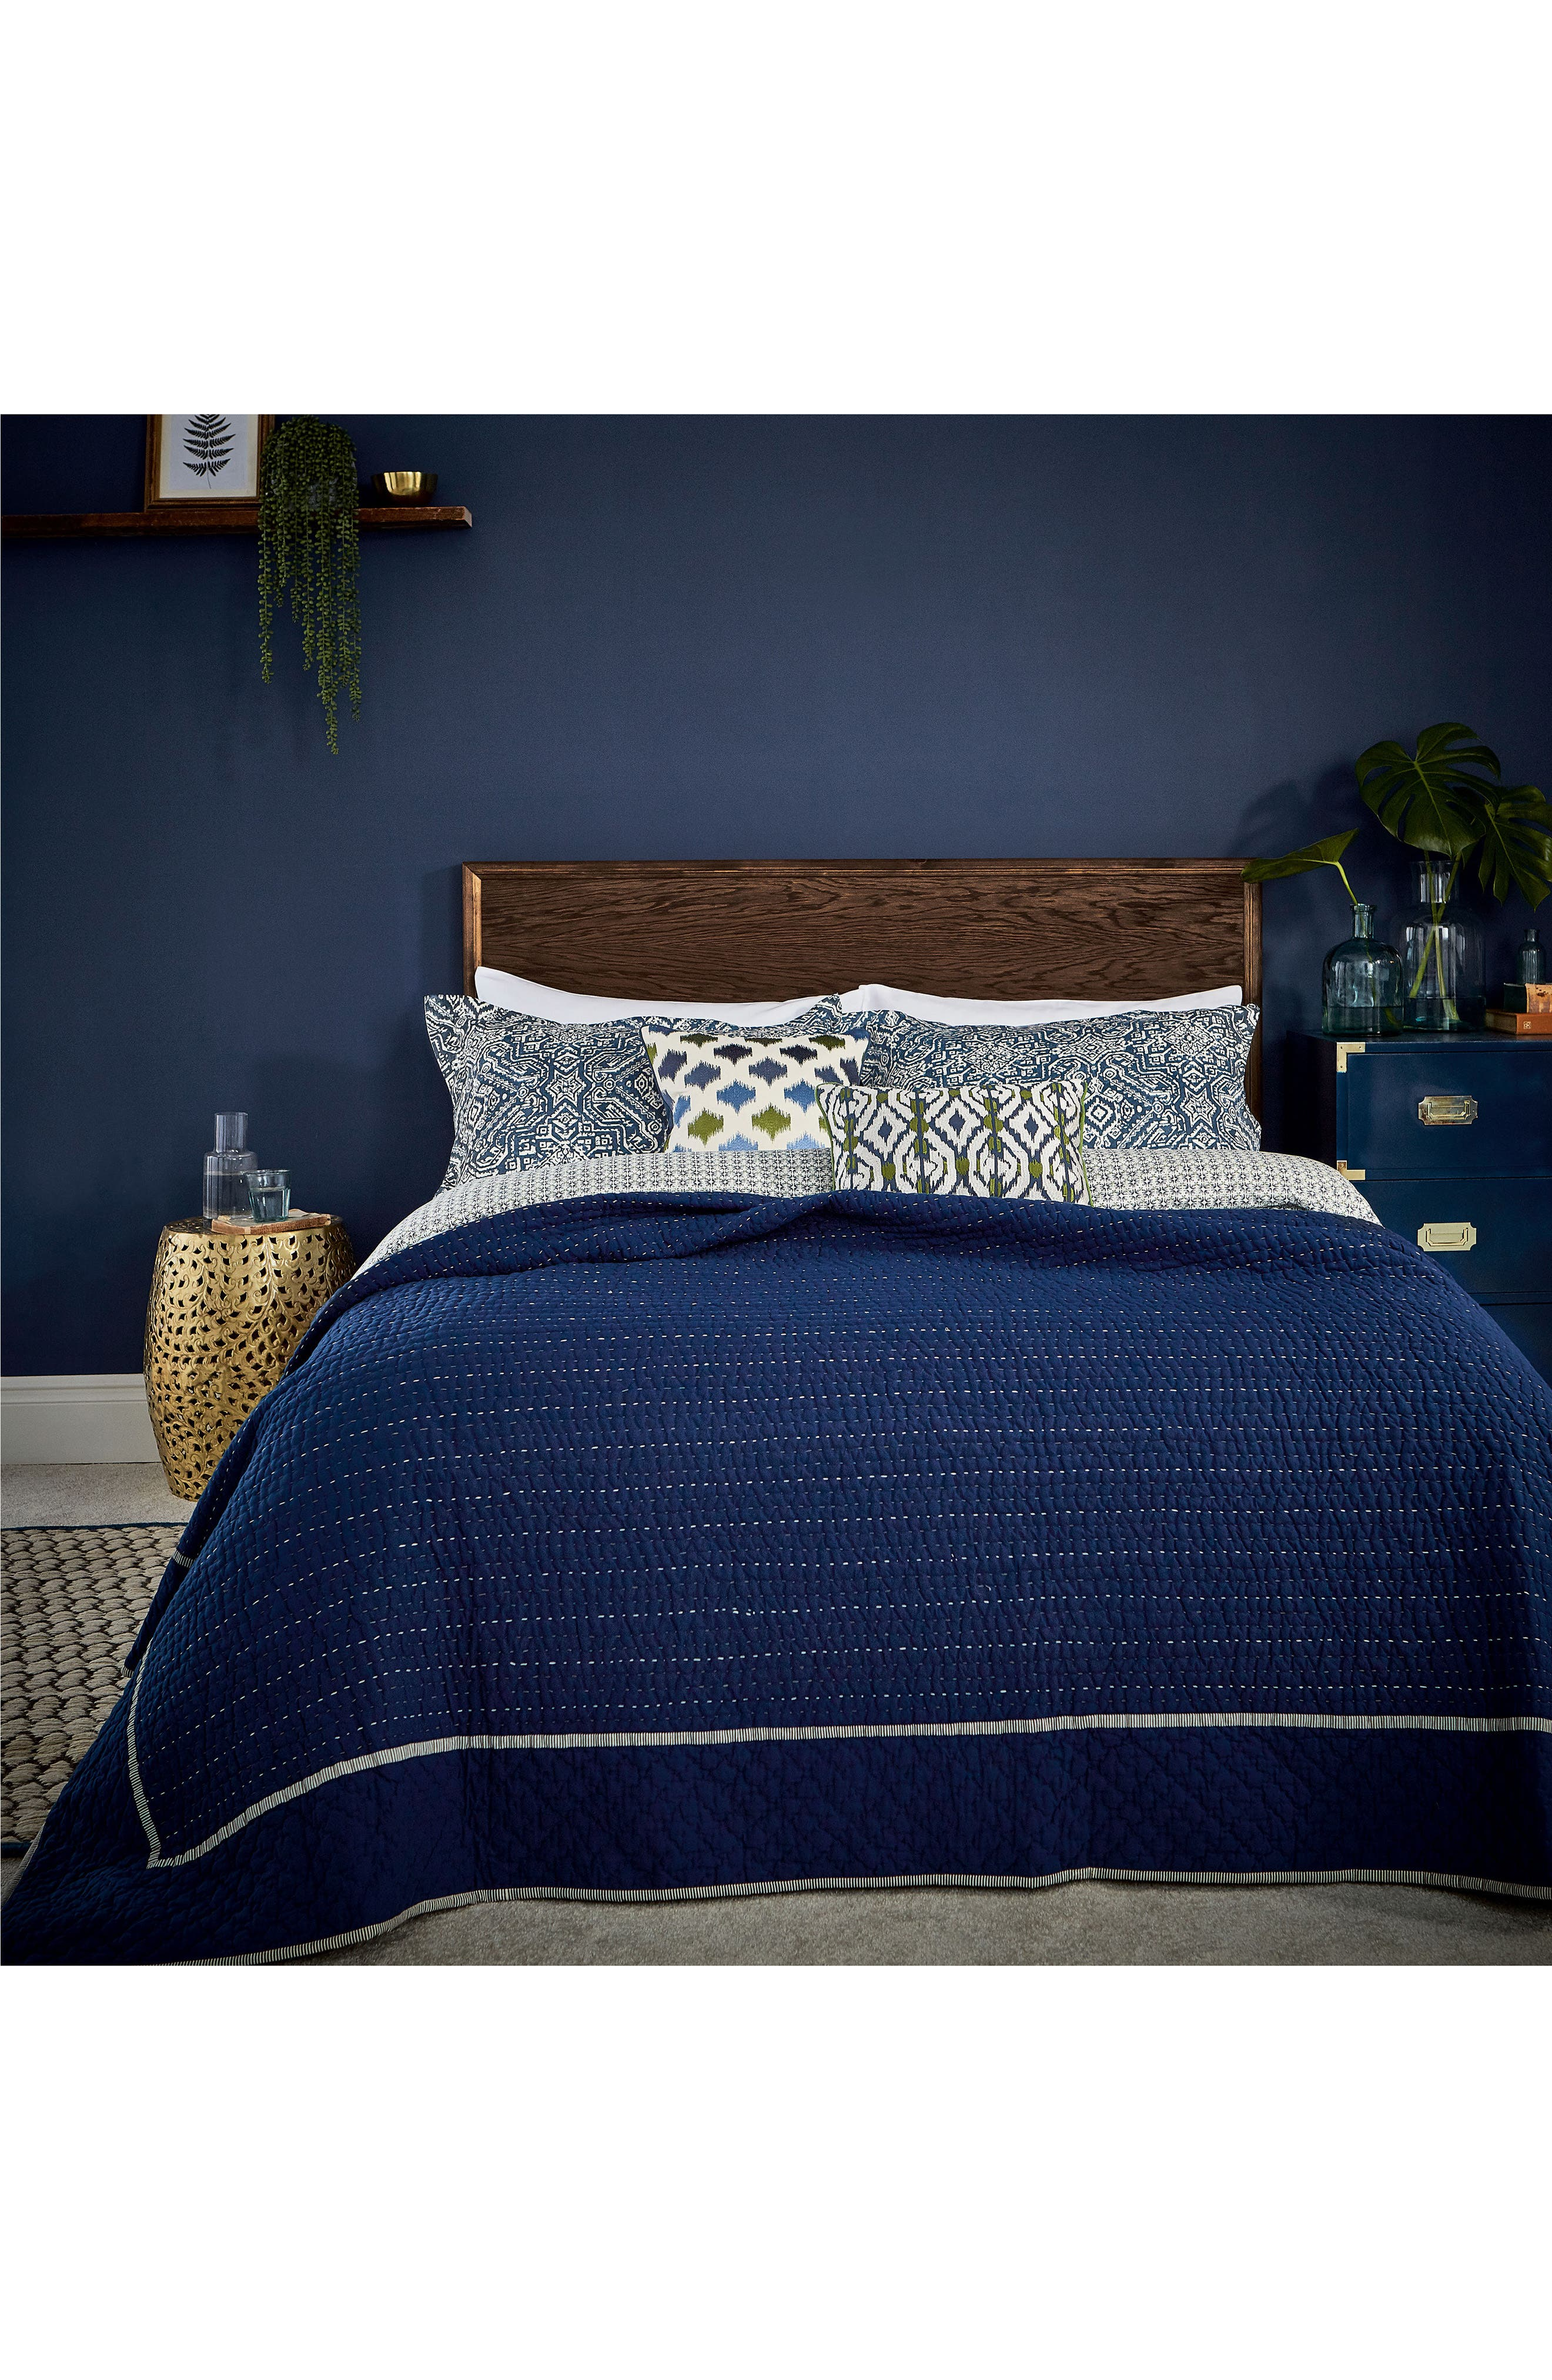 Ila Hand Stitched Kantha Quilt,                         Main,                         color, Navy